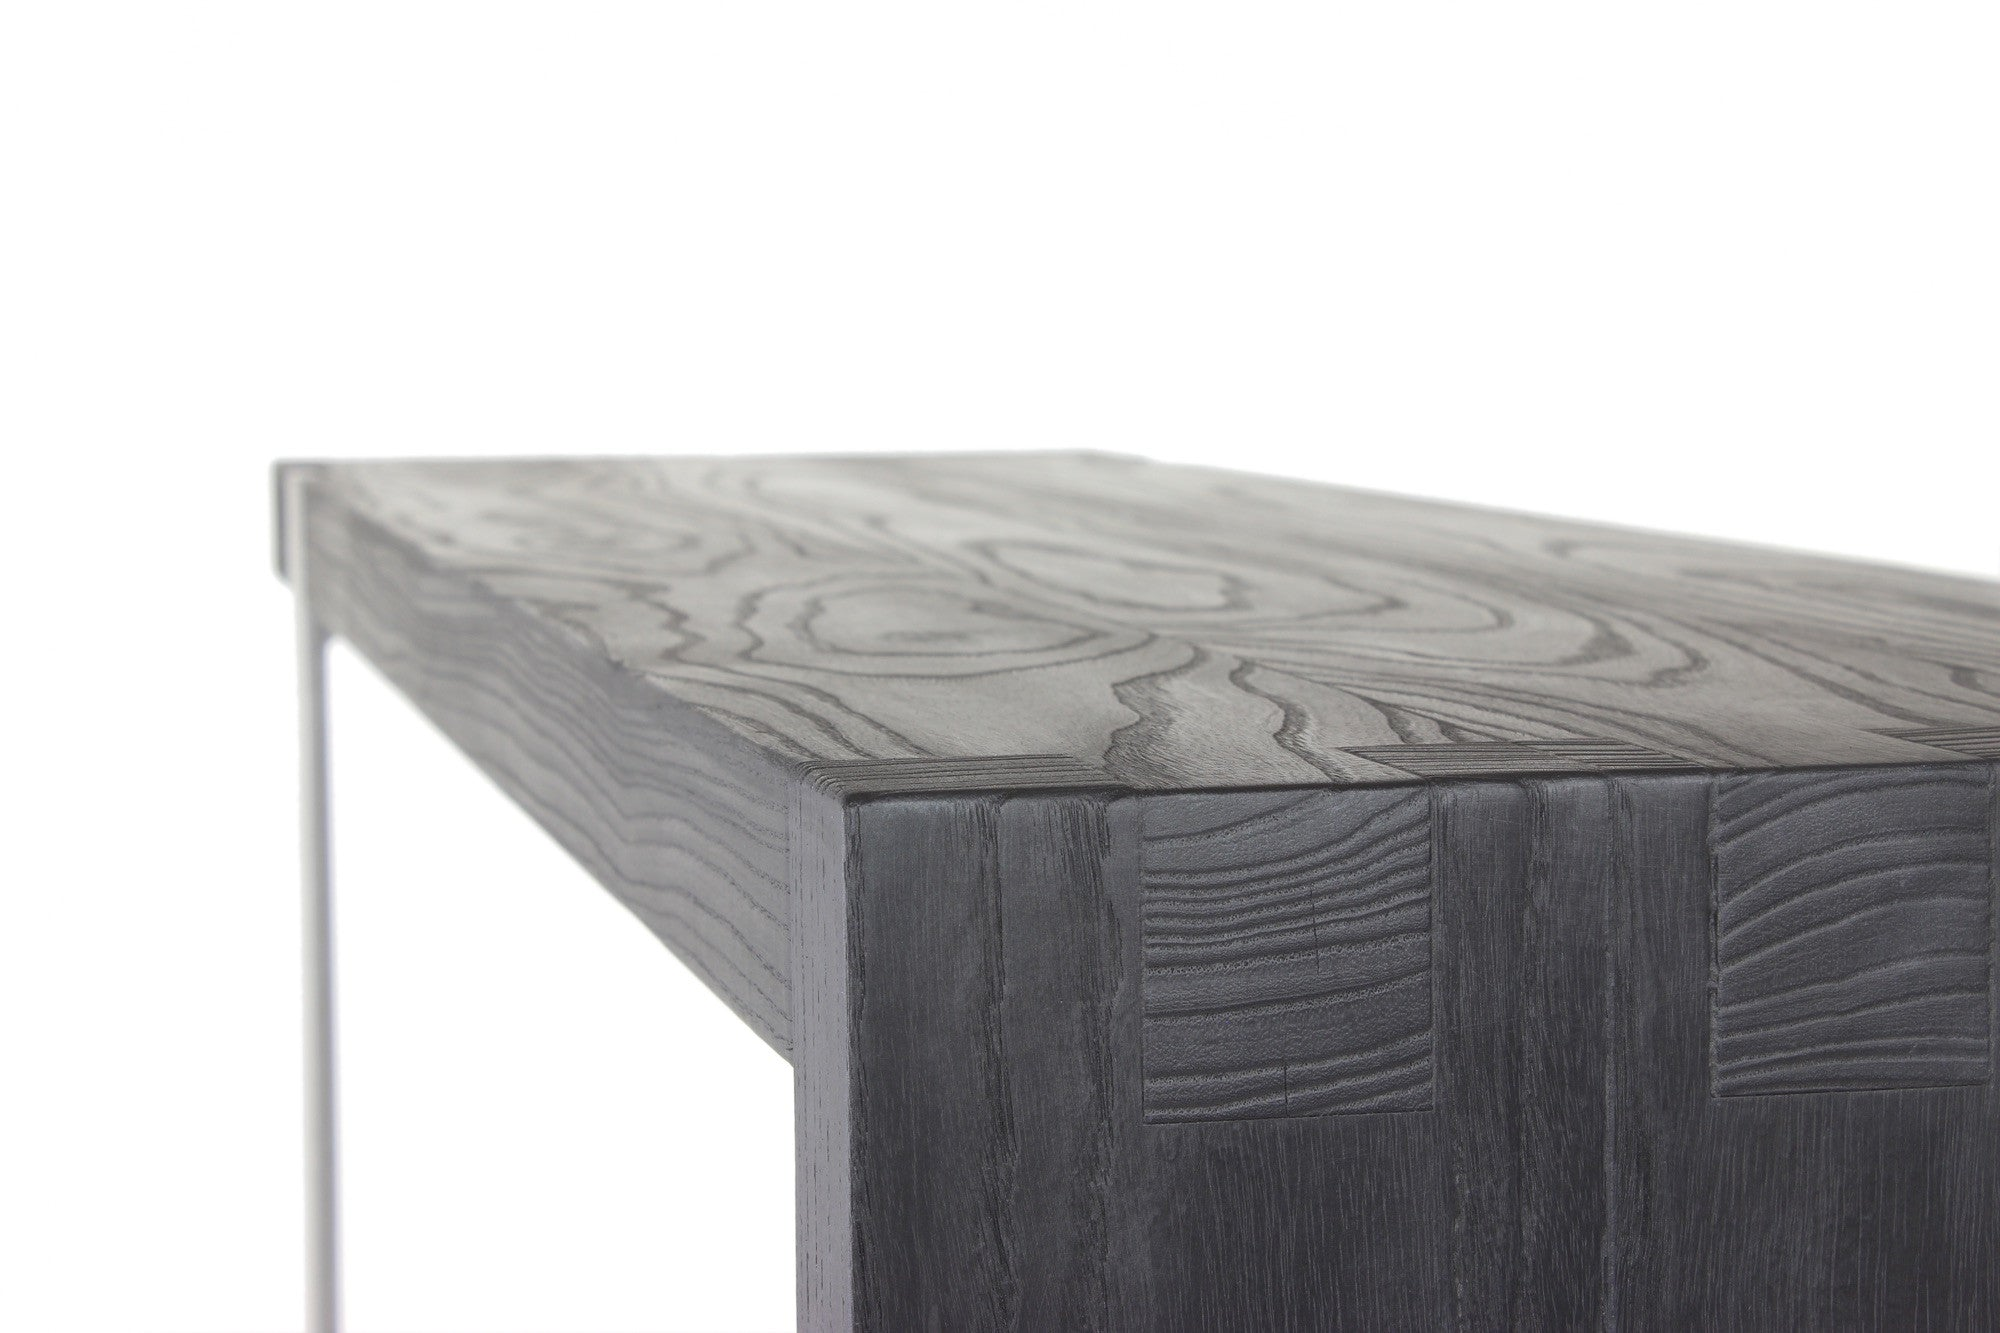 5' entry table | volcanic ash wood finish with stainless steel